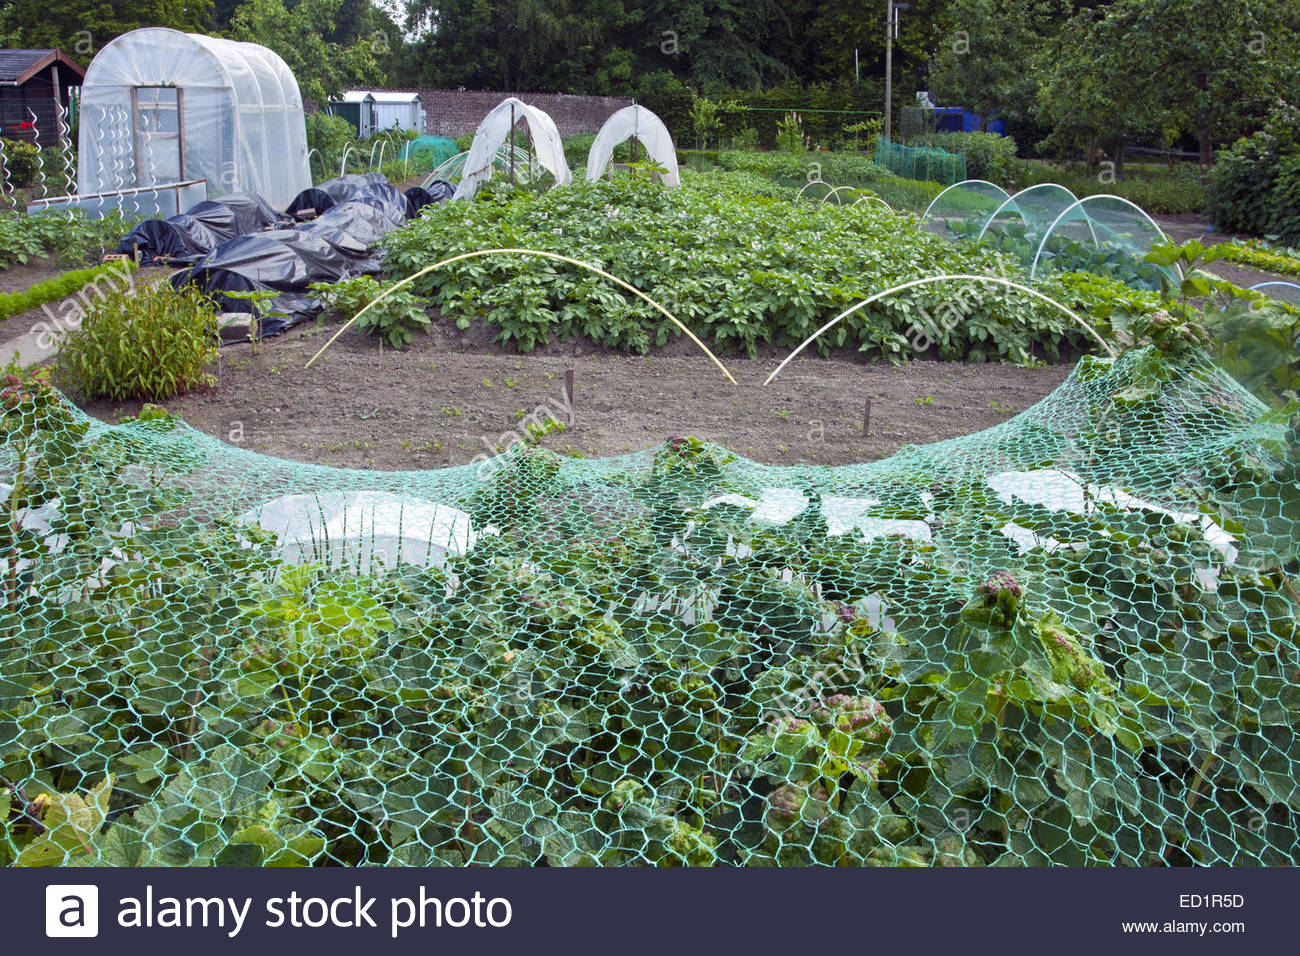 Kitchen Vegetable Garden Plastic Greenhouse And Tunnels And Vegetables Growing In Kitchen